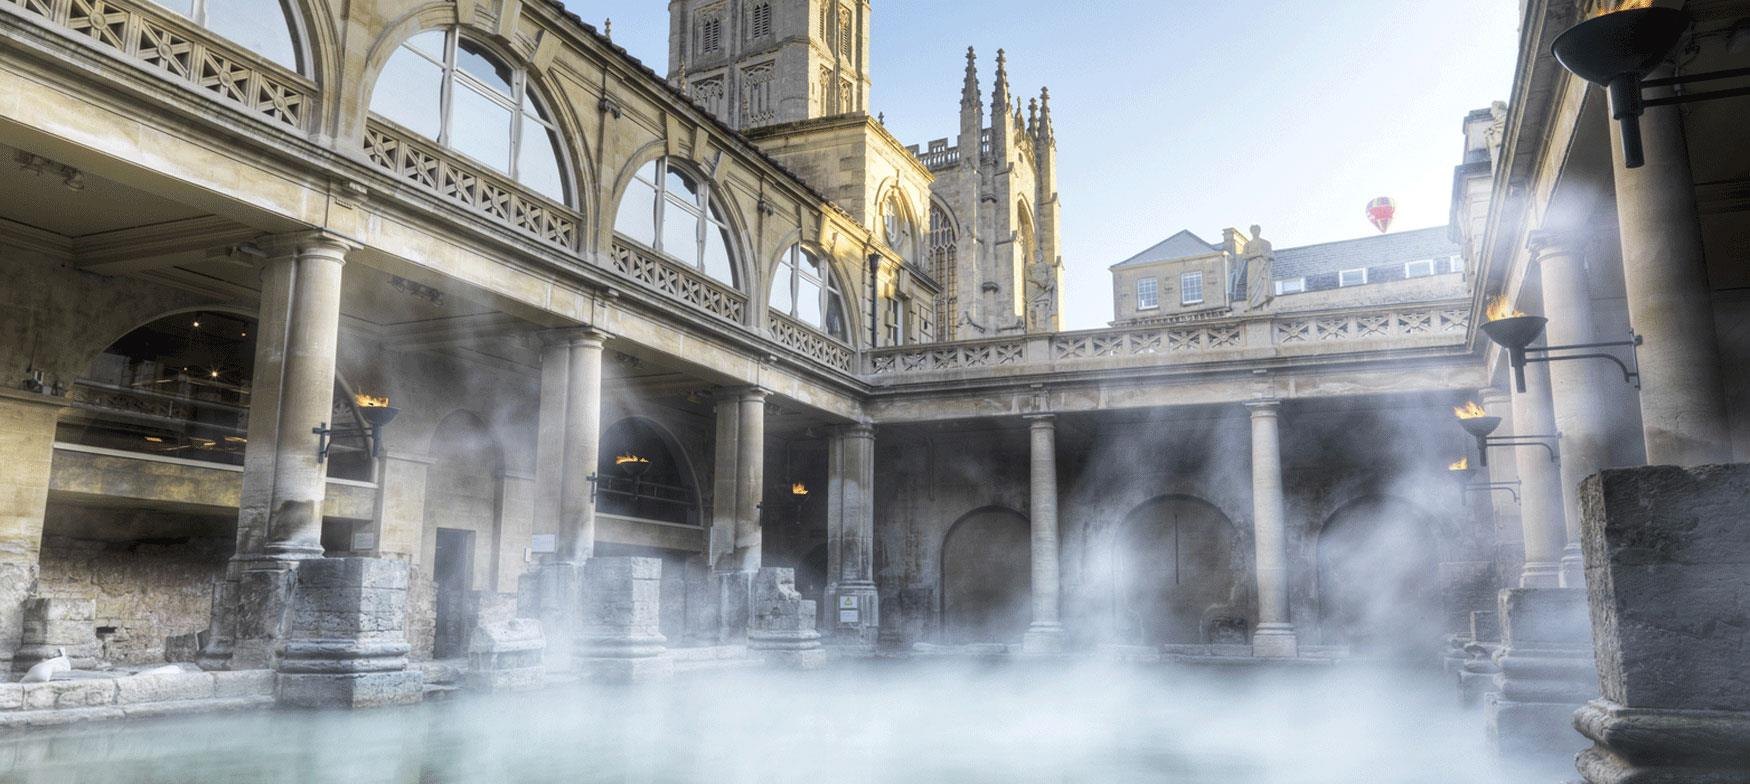 Immerse yourself in the Roman Baths